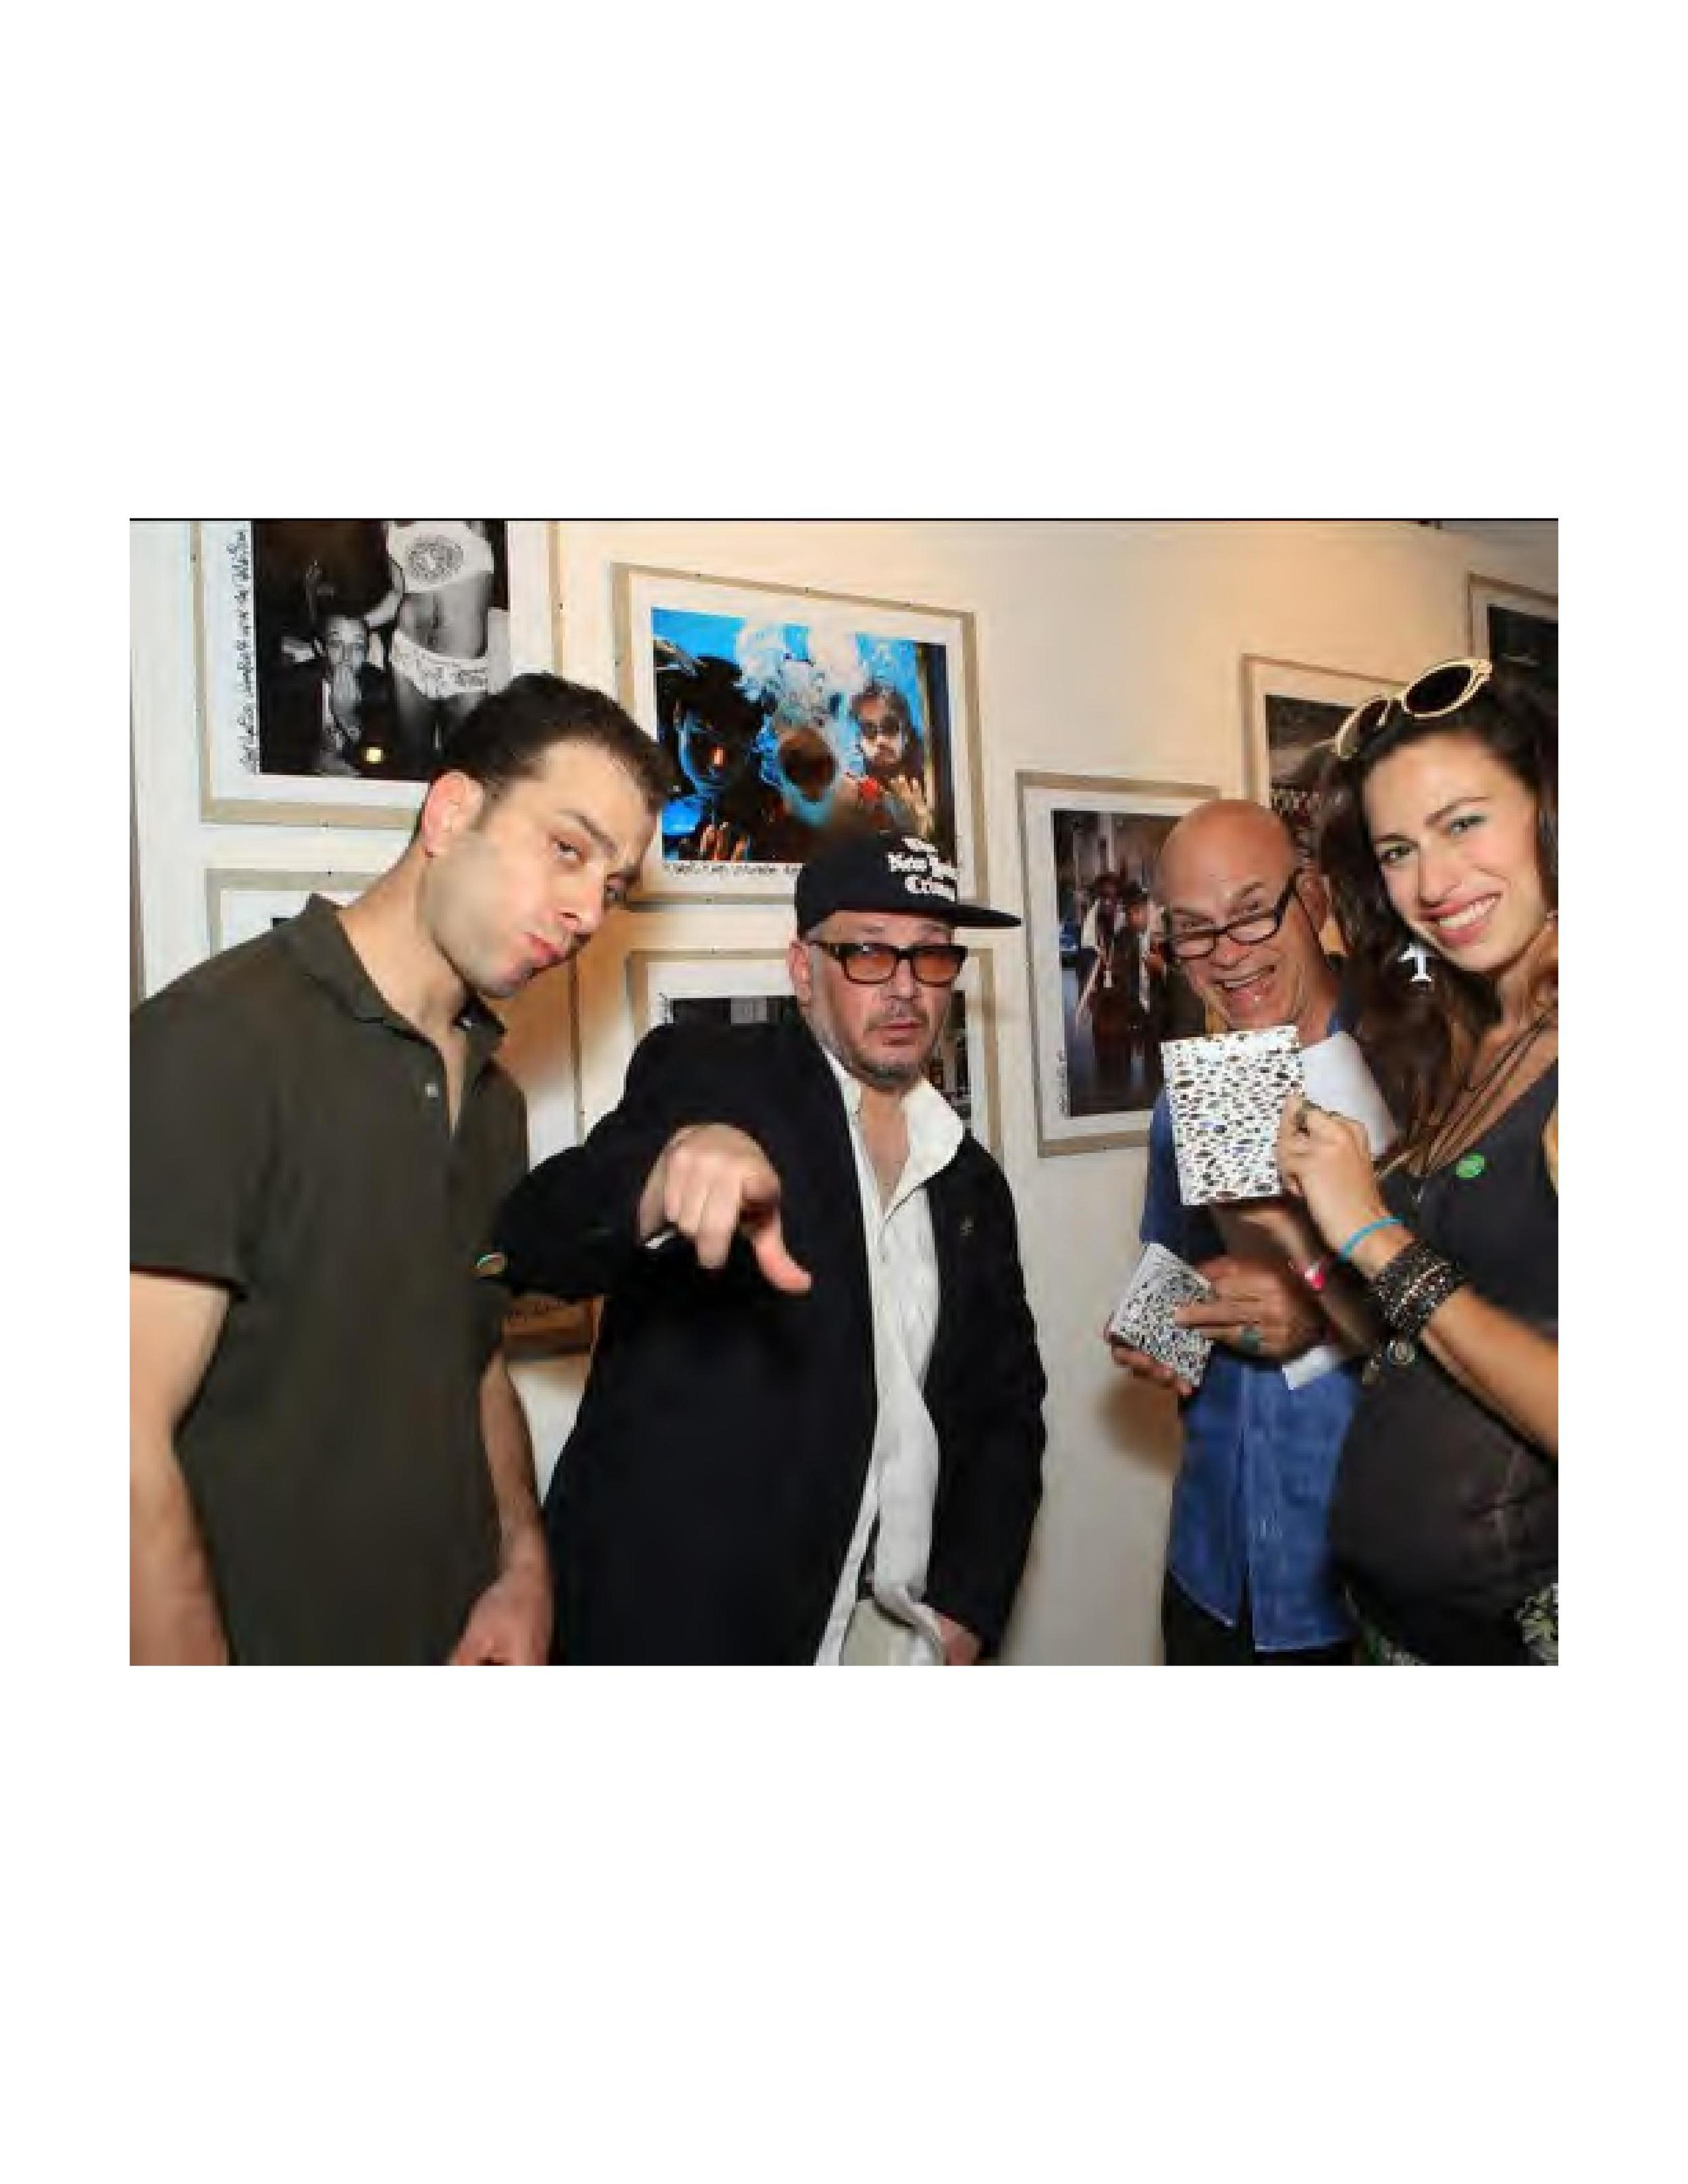 Miami_Art_Basel_Photographs-web-page-050.jpg